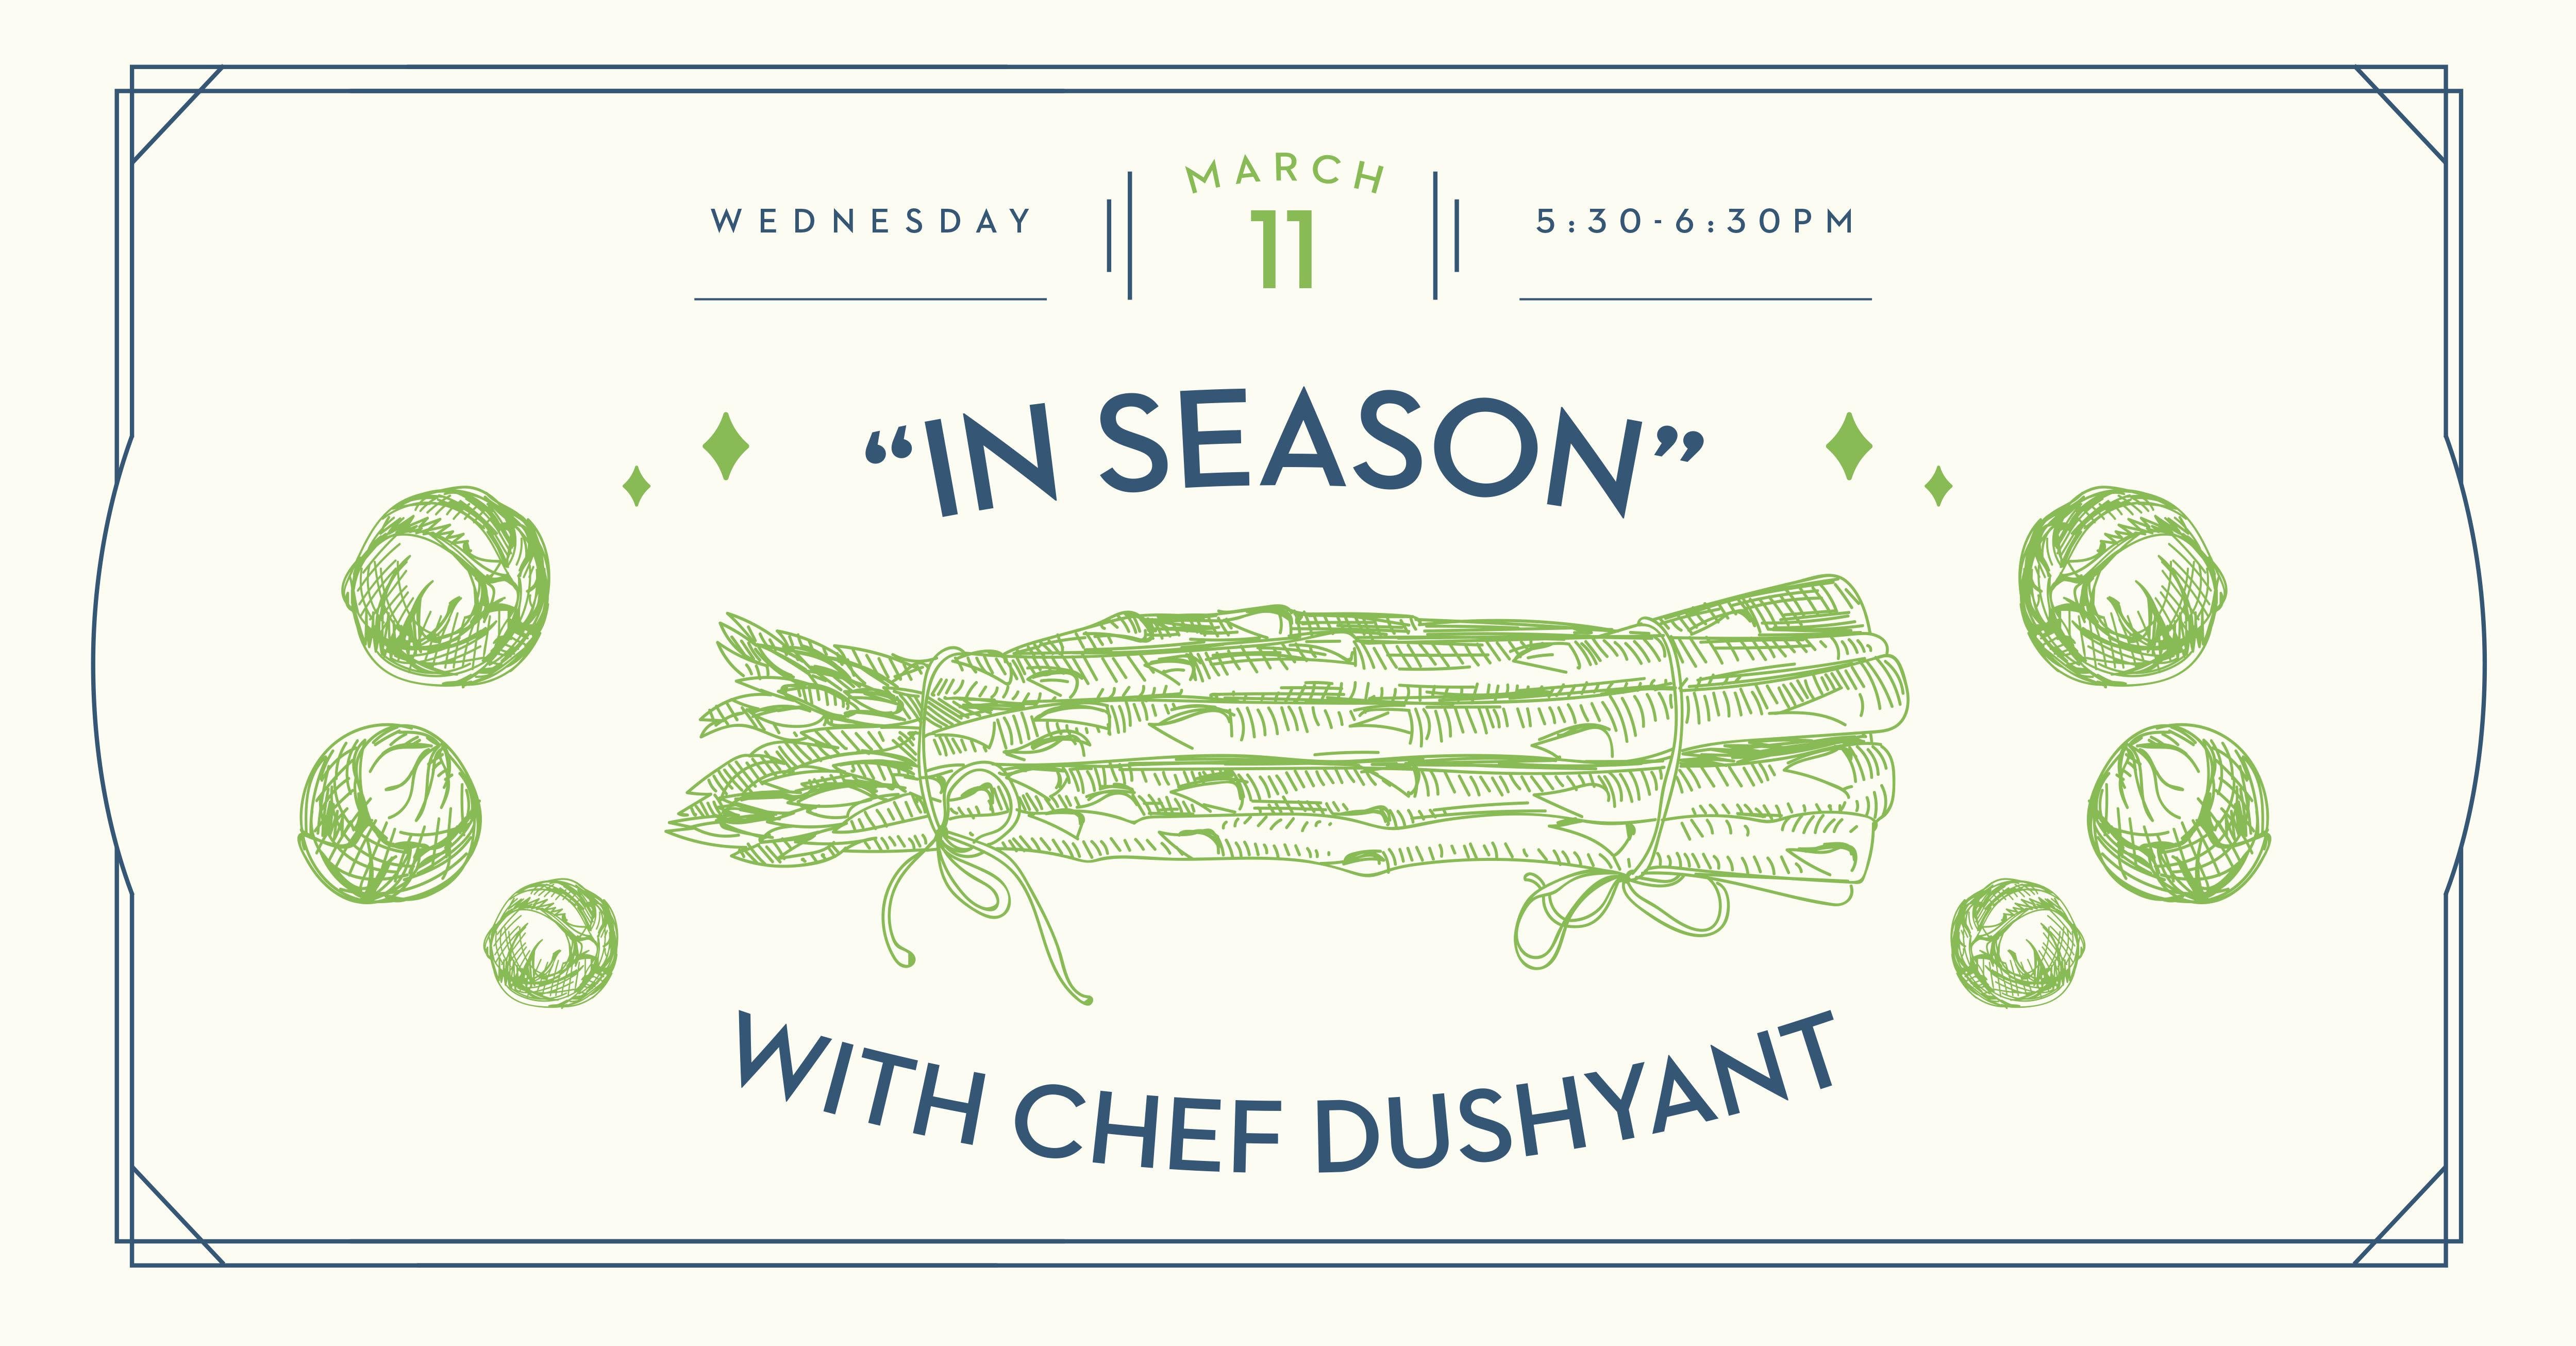 April 2020 - In Season with Chef Dushyant